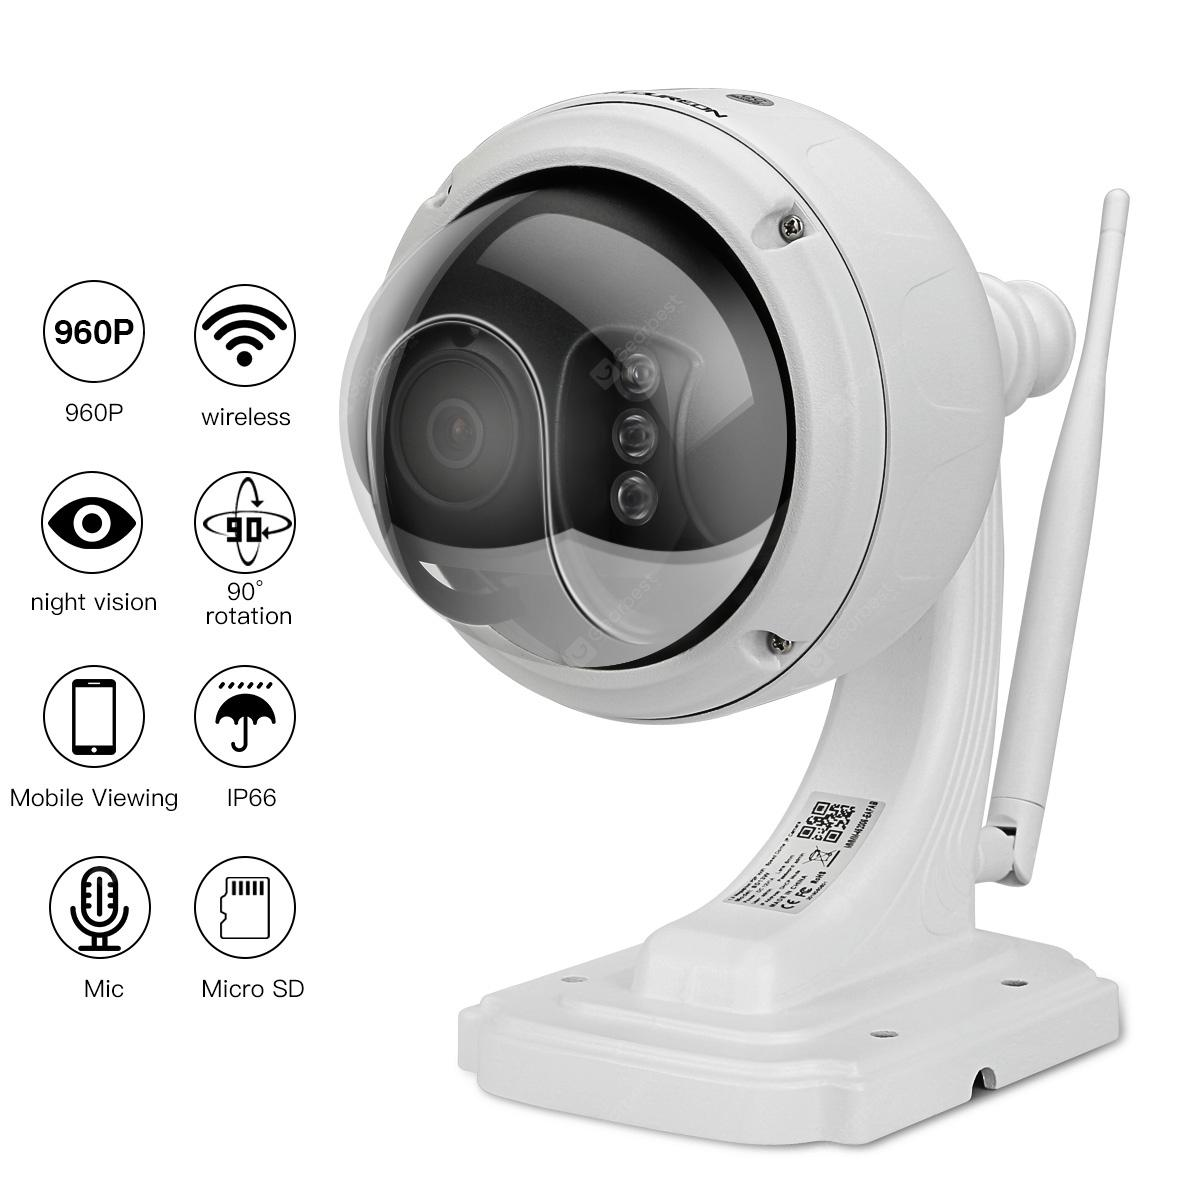 FLOUREON 1.3MP 960P 1280*960 Wifi H.264 Wireless CCTV Security TF Micro SD Card IR-CUT IP66 AP Mode Built-in Mic Dome PT IP Camera EU - WHITE